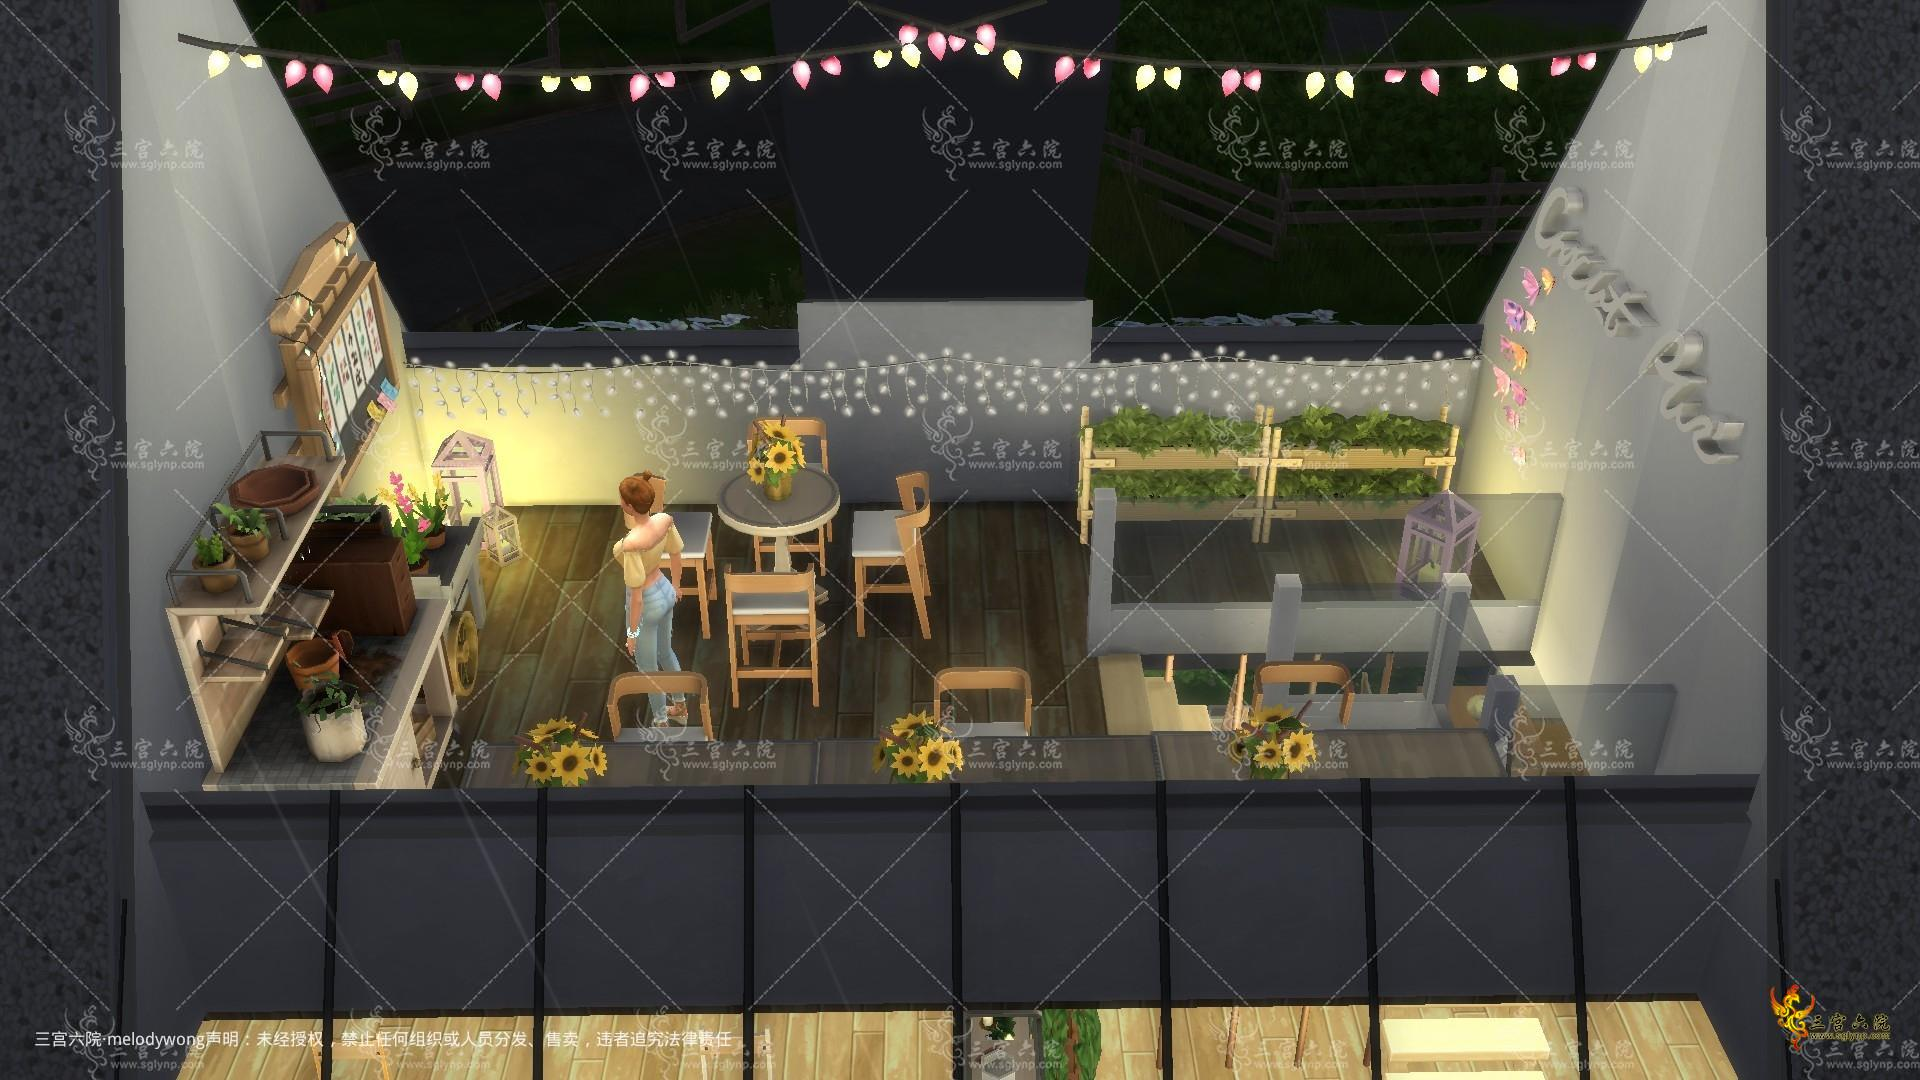 The Sims 4 2021_8_26 下午 04_31_20.png